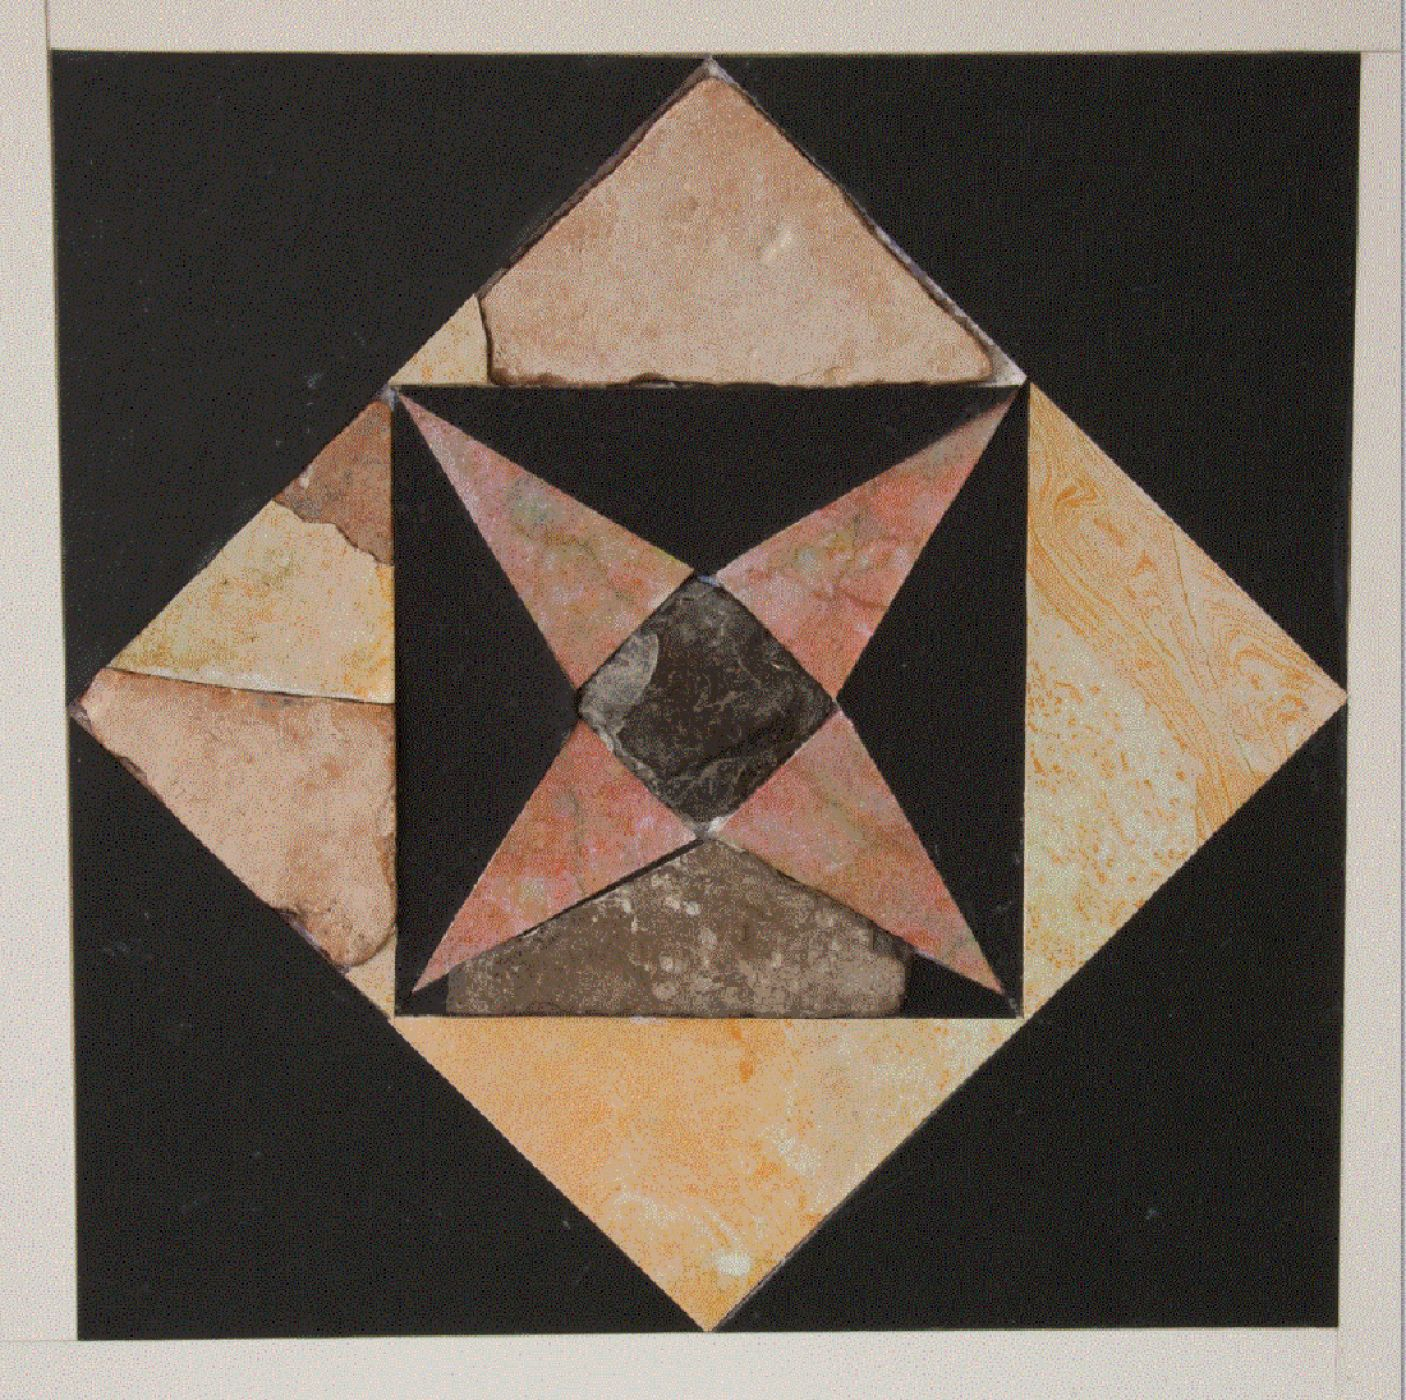 4-Pointed Star Tile from Herod's Second Temple. Photo: Temple Mount Sifting Project.